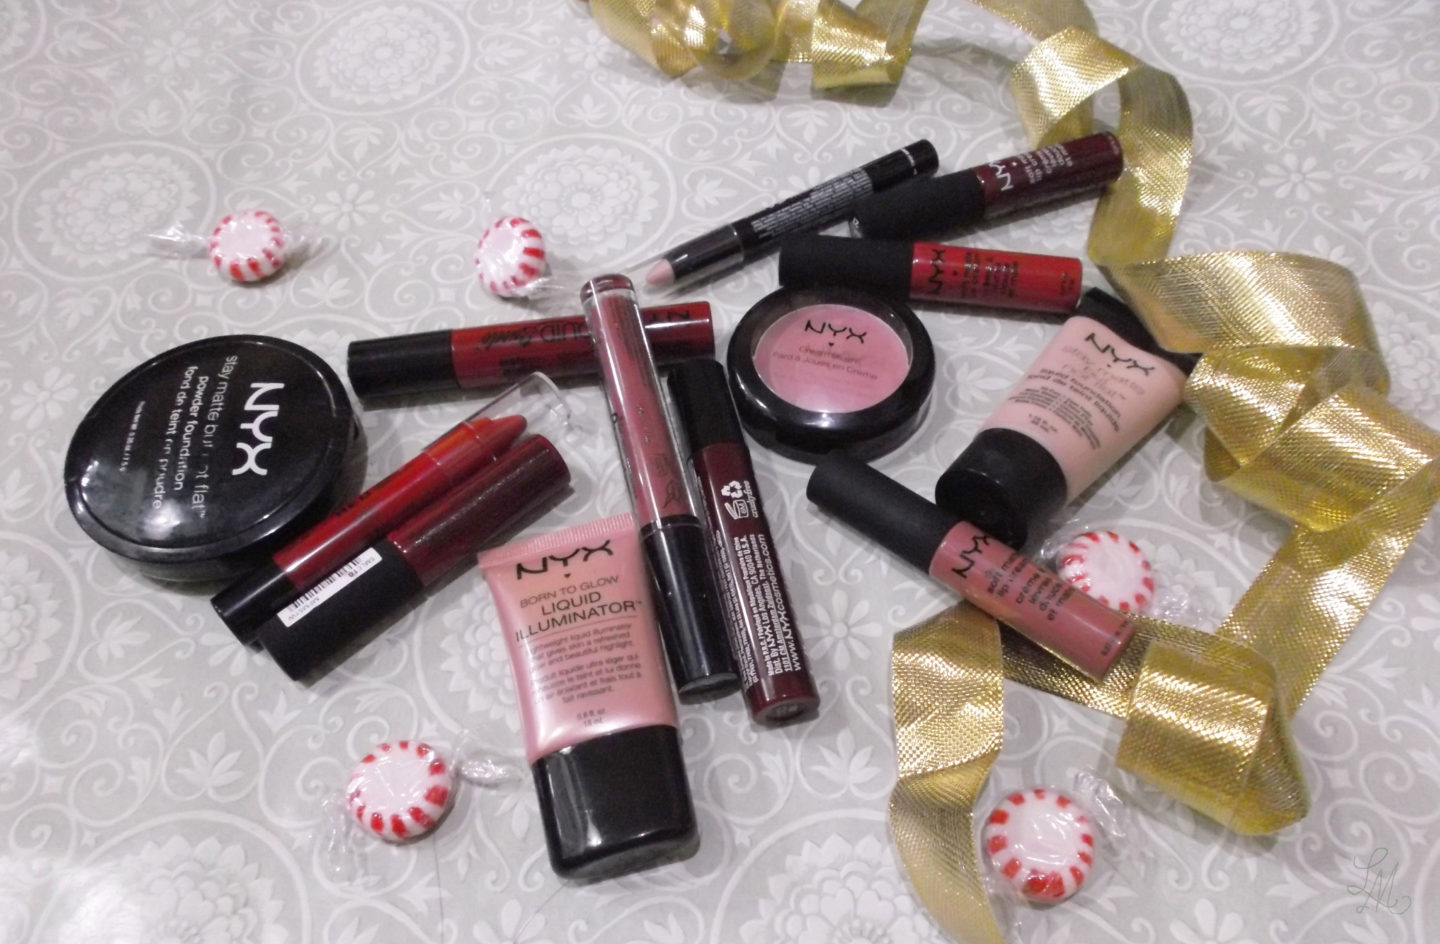 My growing love affair with Nyx cosmetics